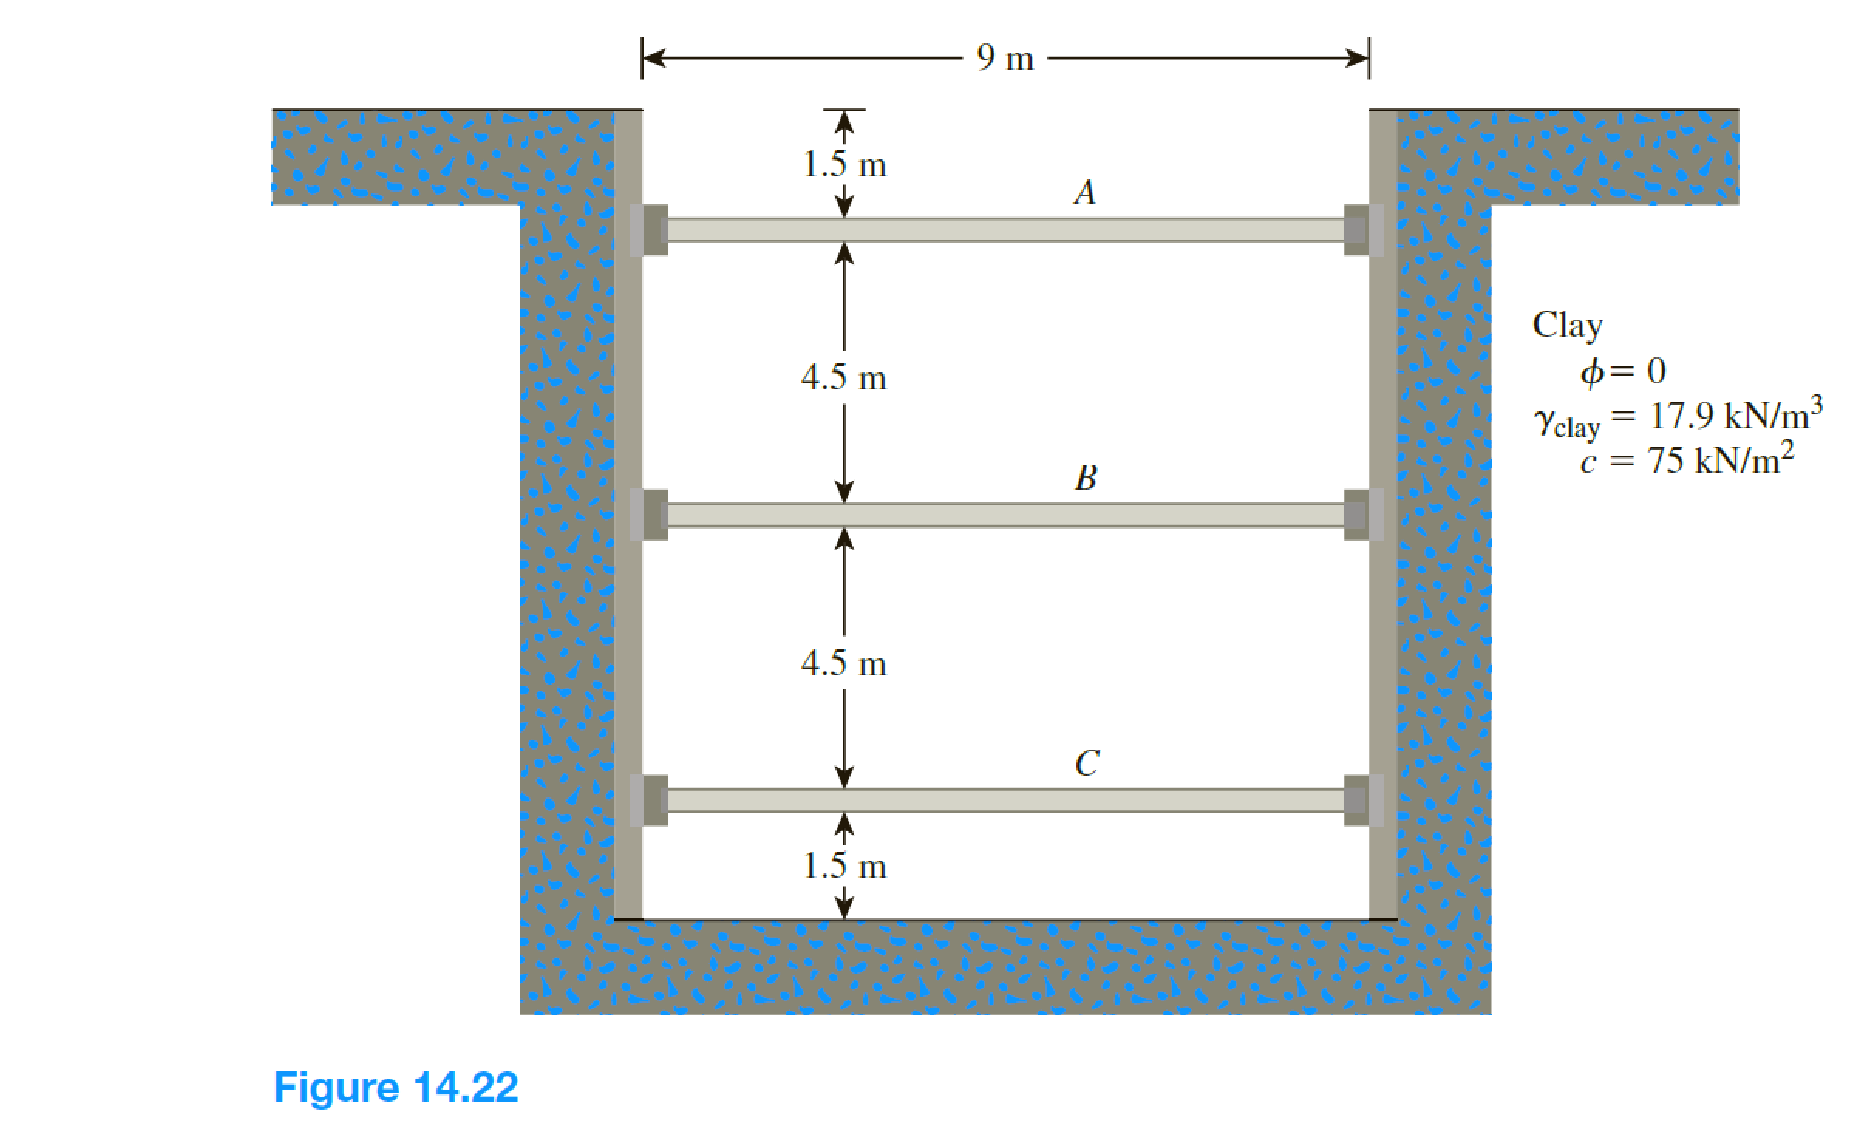 Chapter 14, Problem 14.15P, The cross section of a braced cut supporting a sheet pile installation in a clay soil is shown in